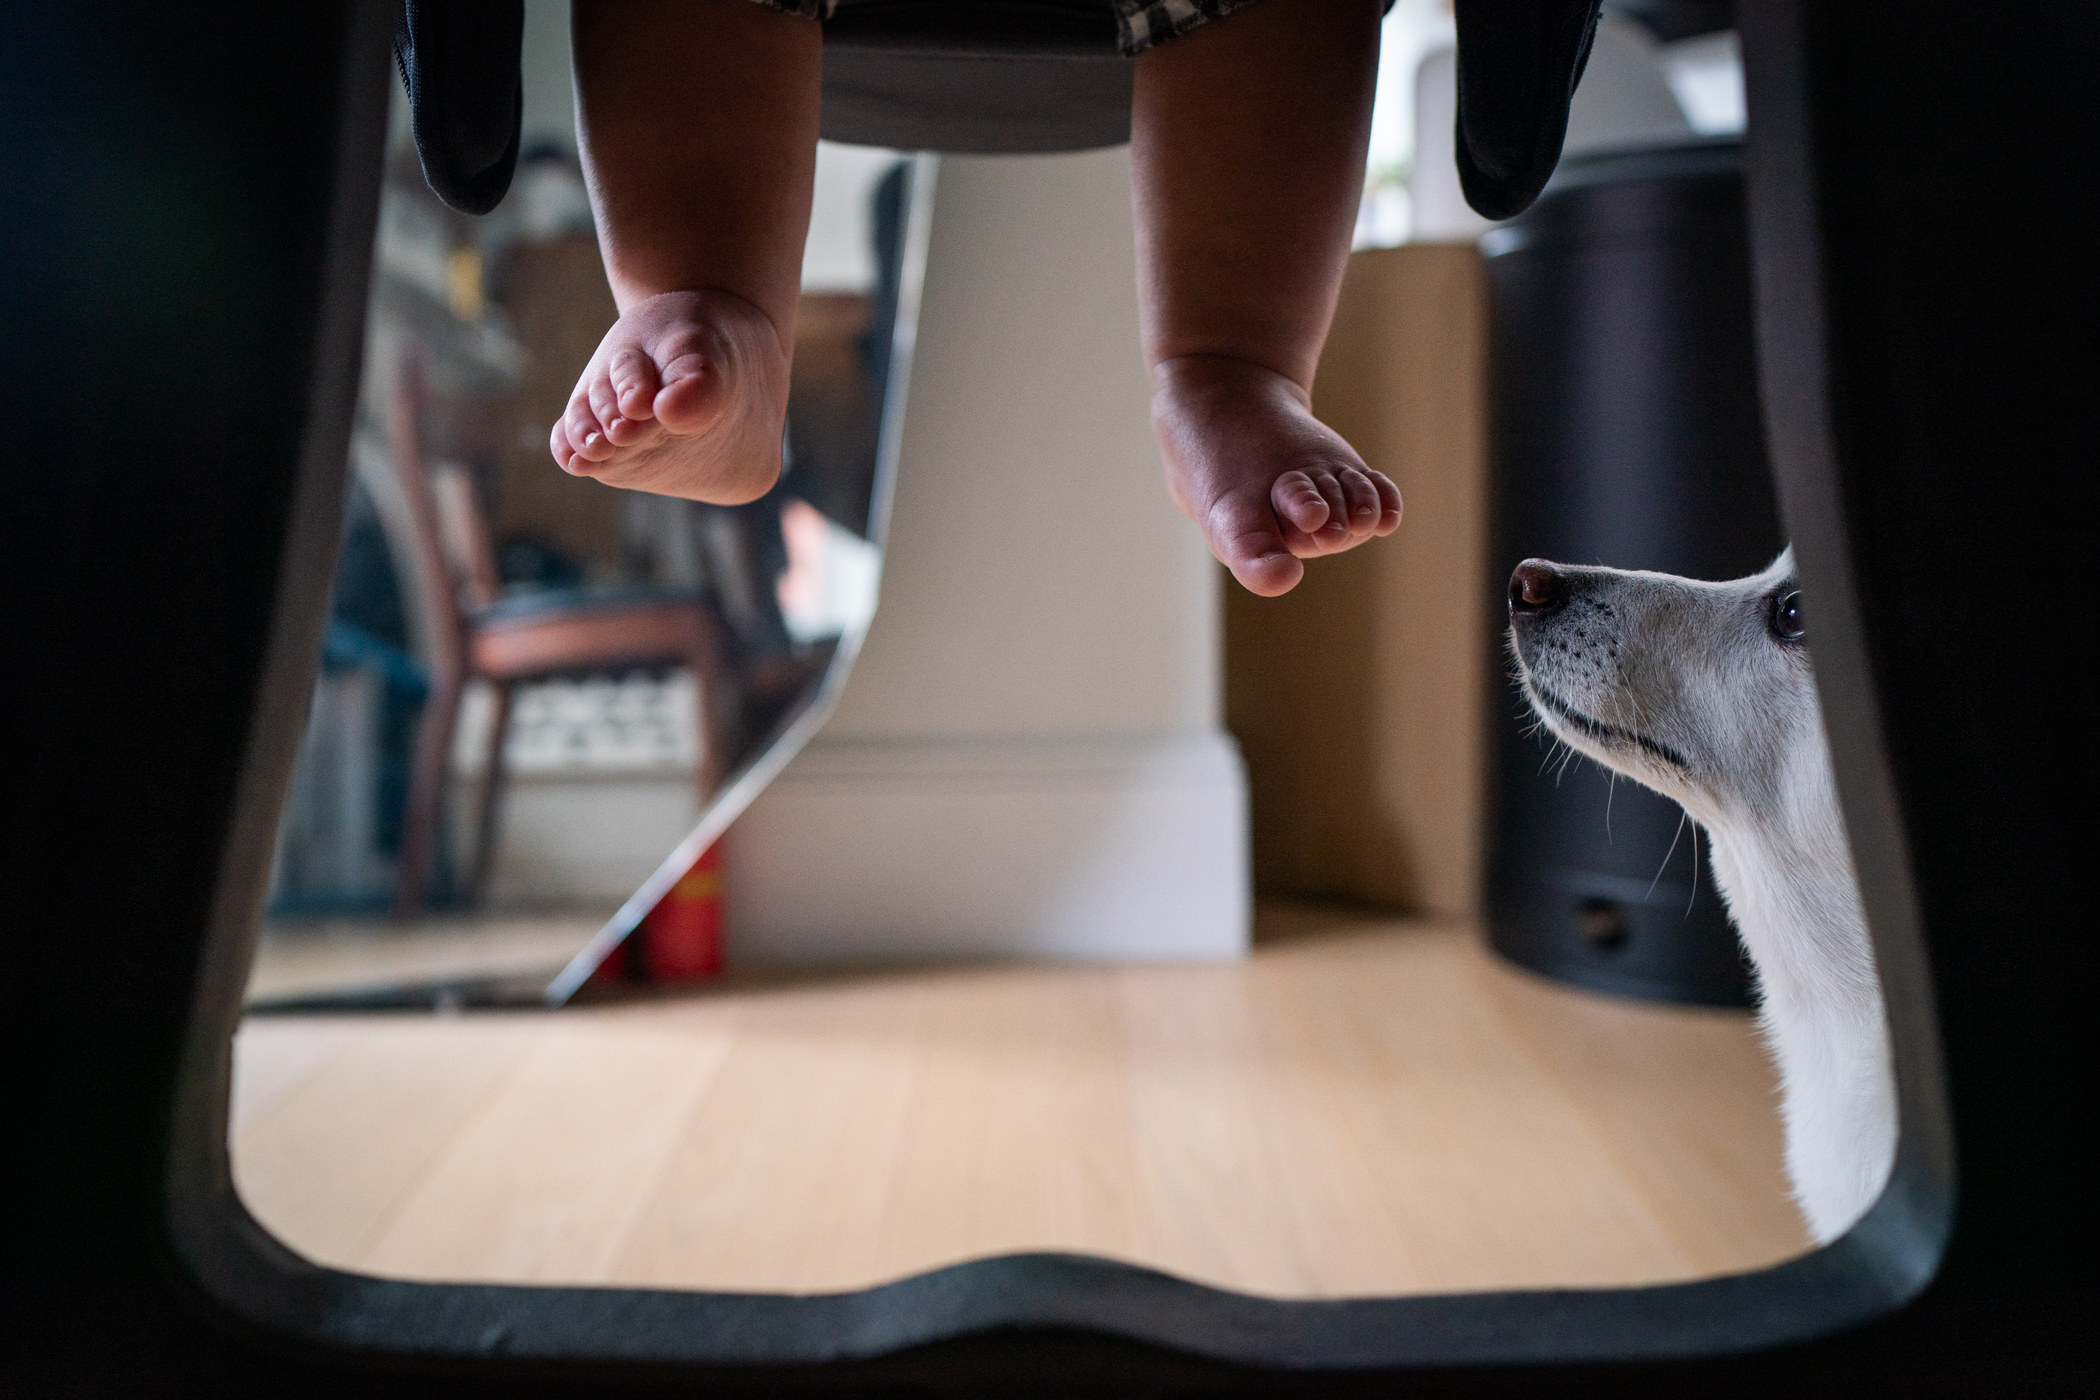 A small dog looks at a baby's dangling feet under a table